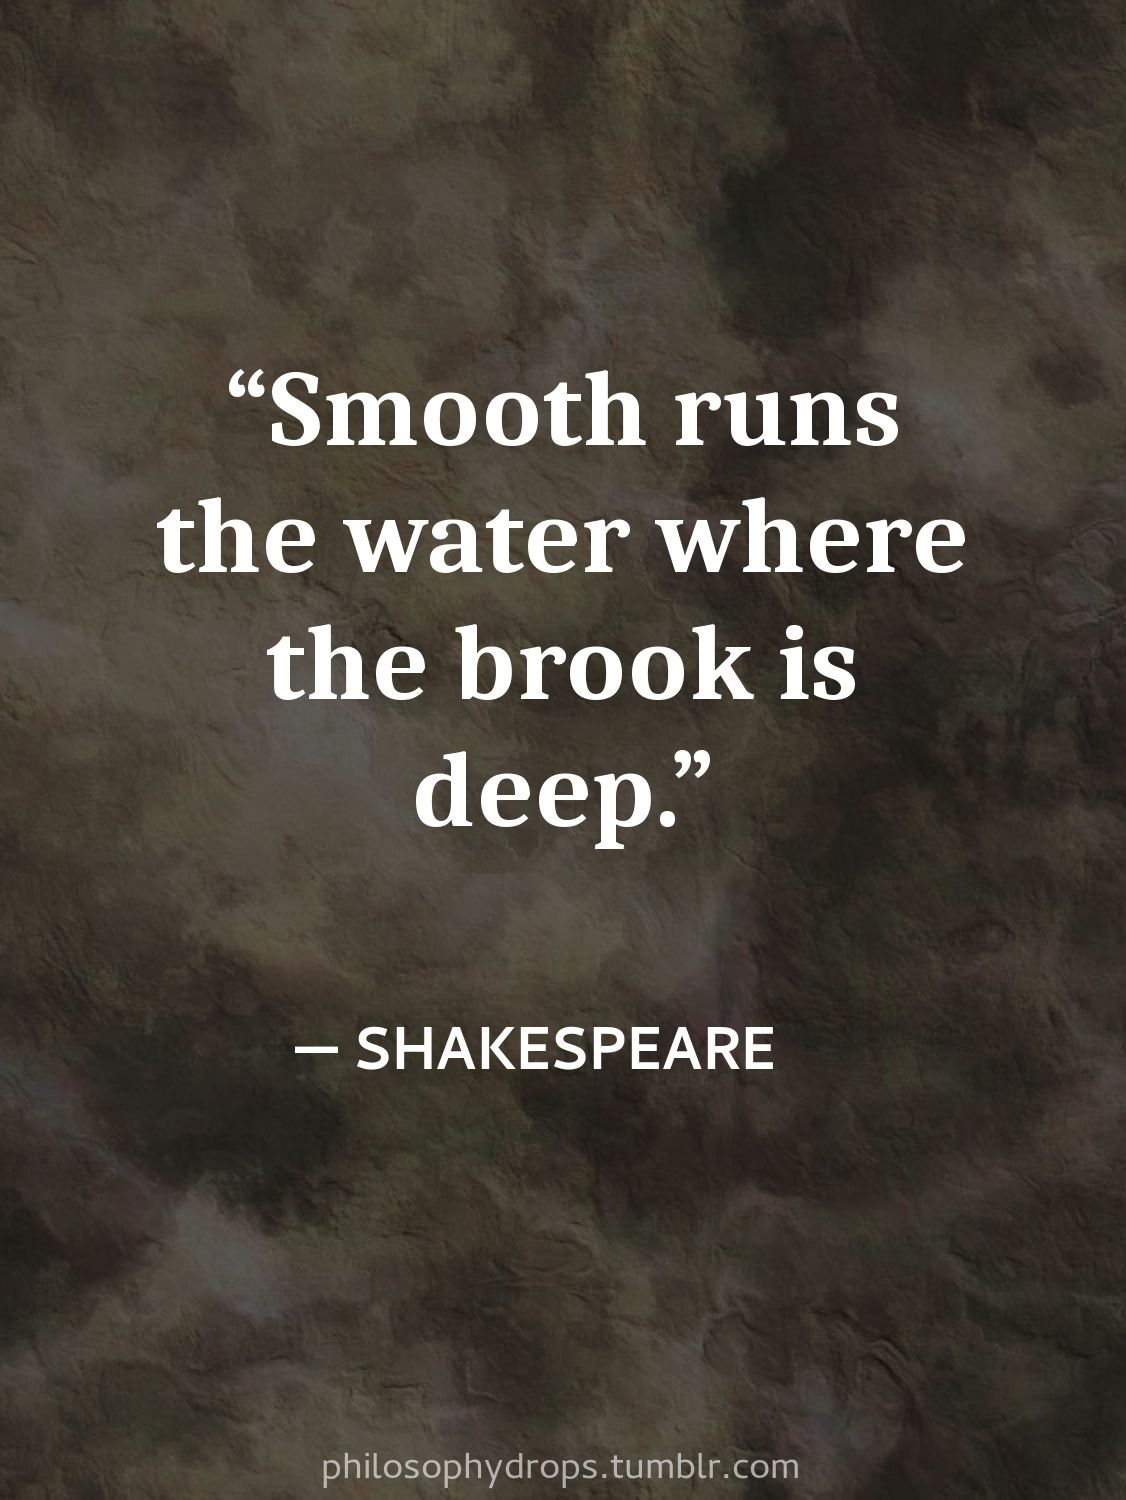 Quotes About Character Philosophy Quotes Shakespeare Smoothly Depth Character Robustness